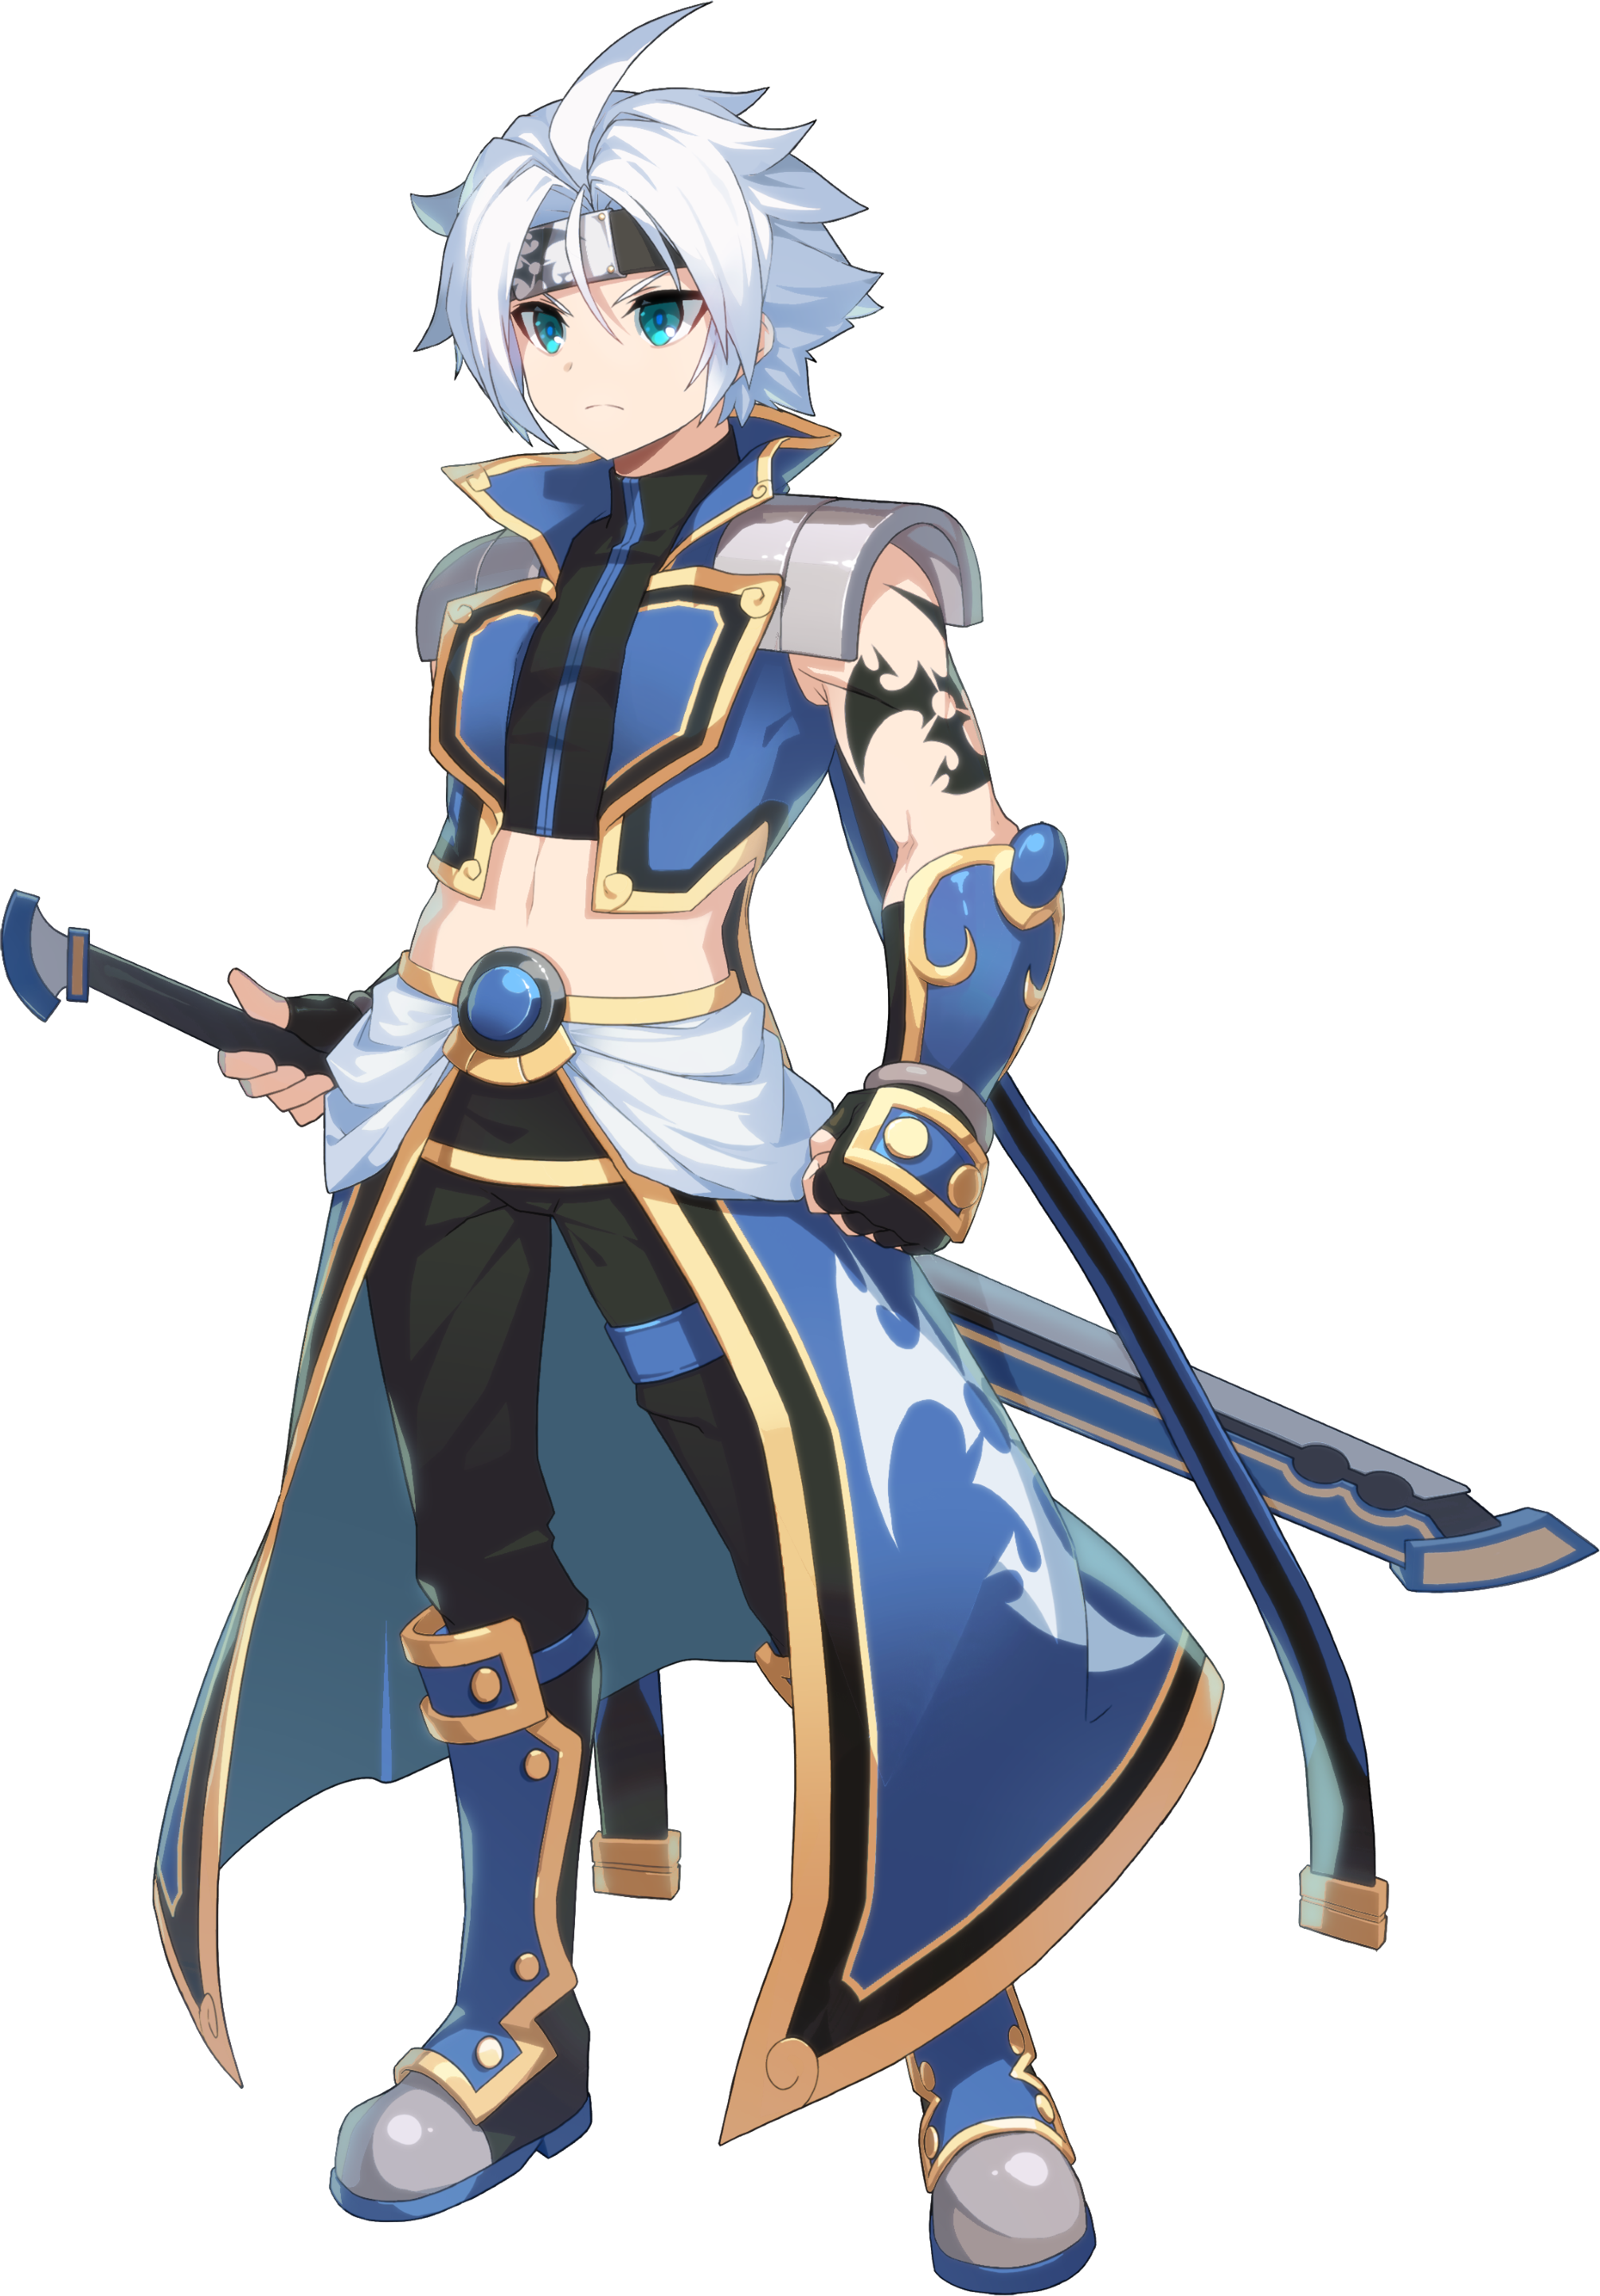 Lass/Grand Chase Dimensional Chaser | Grand Chase Wiki